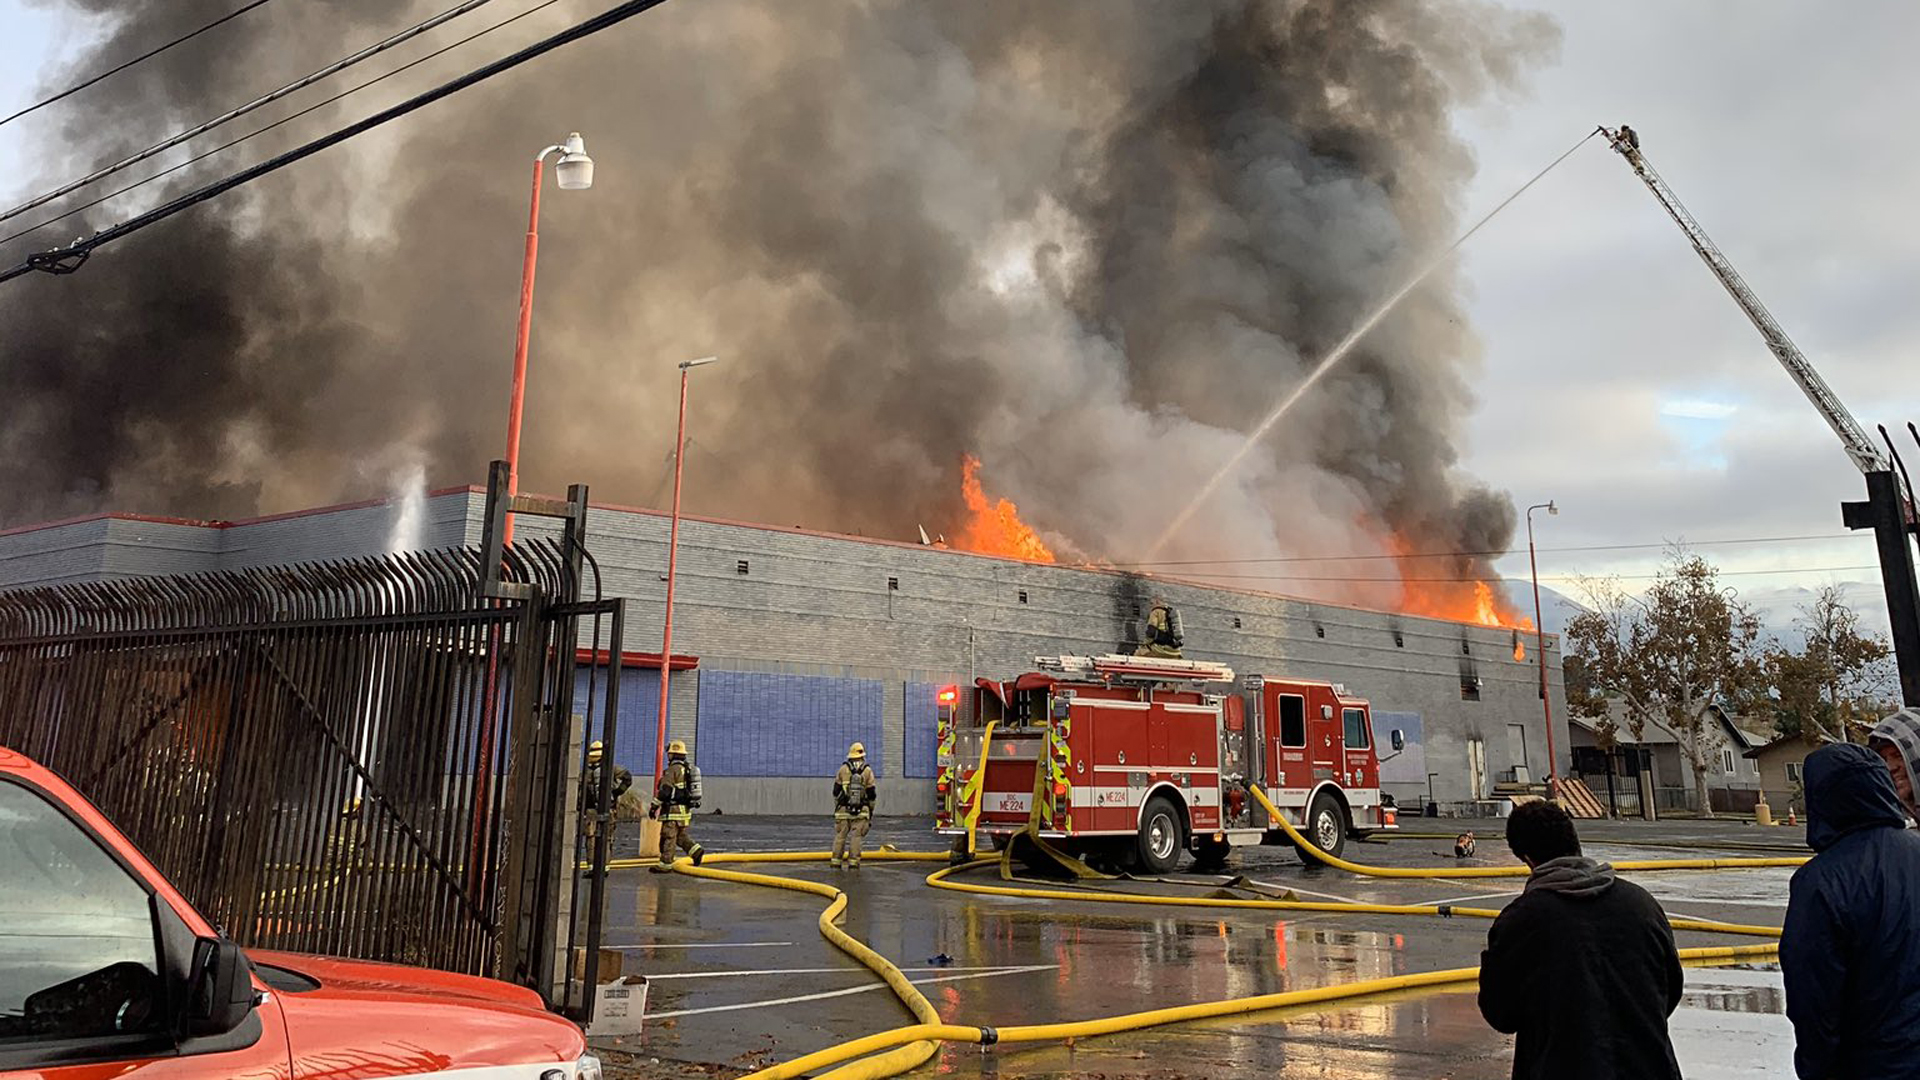 Firefighters battled a blaze aggressively burning at a vacant commercial structure in San Bernardino on Dec. 5, 2019. (Credit: San Bernardino County fire Chief Dan Munsey)